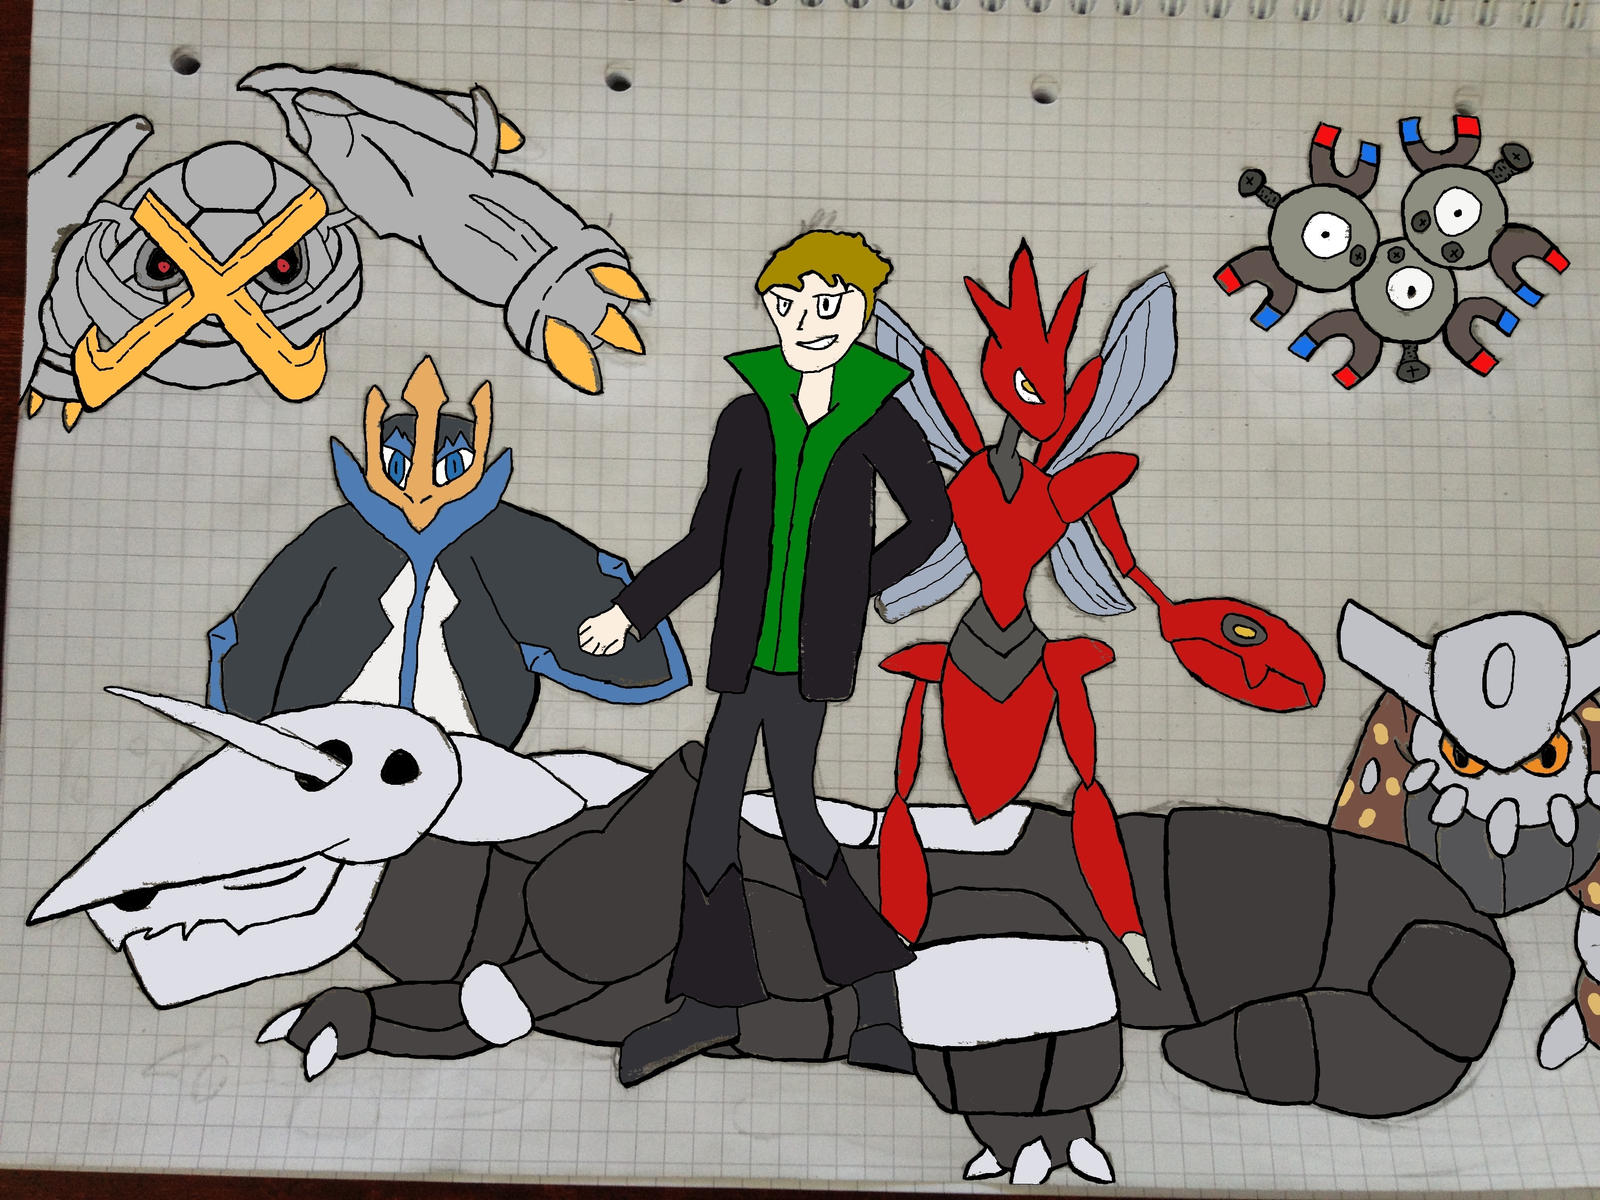 Uncategorized Steel Pokemon my steel pokemon team gen 5 colerd by zack 4310 on deviantart 4310